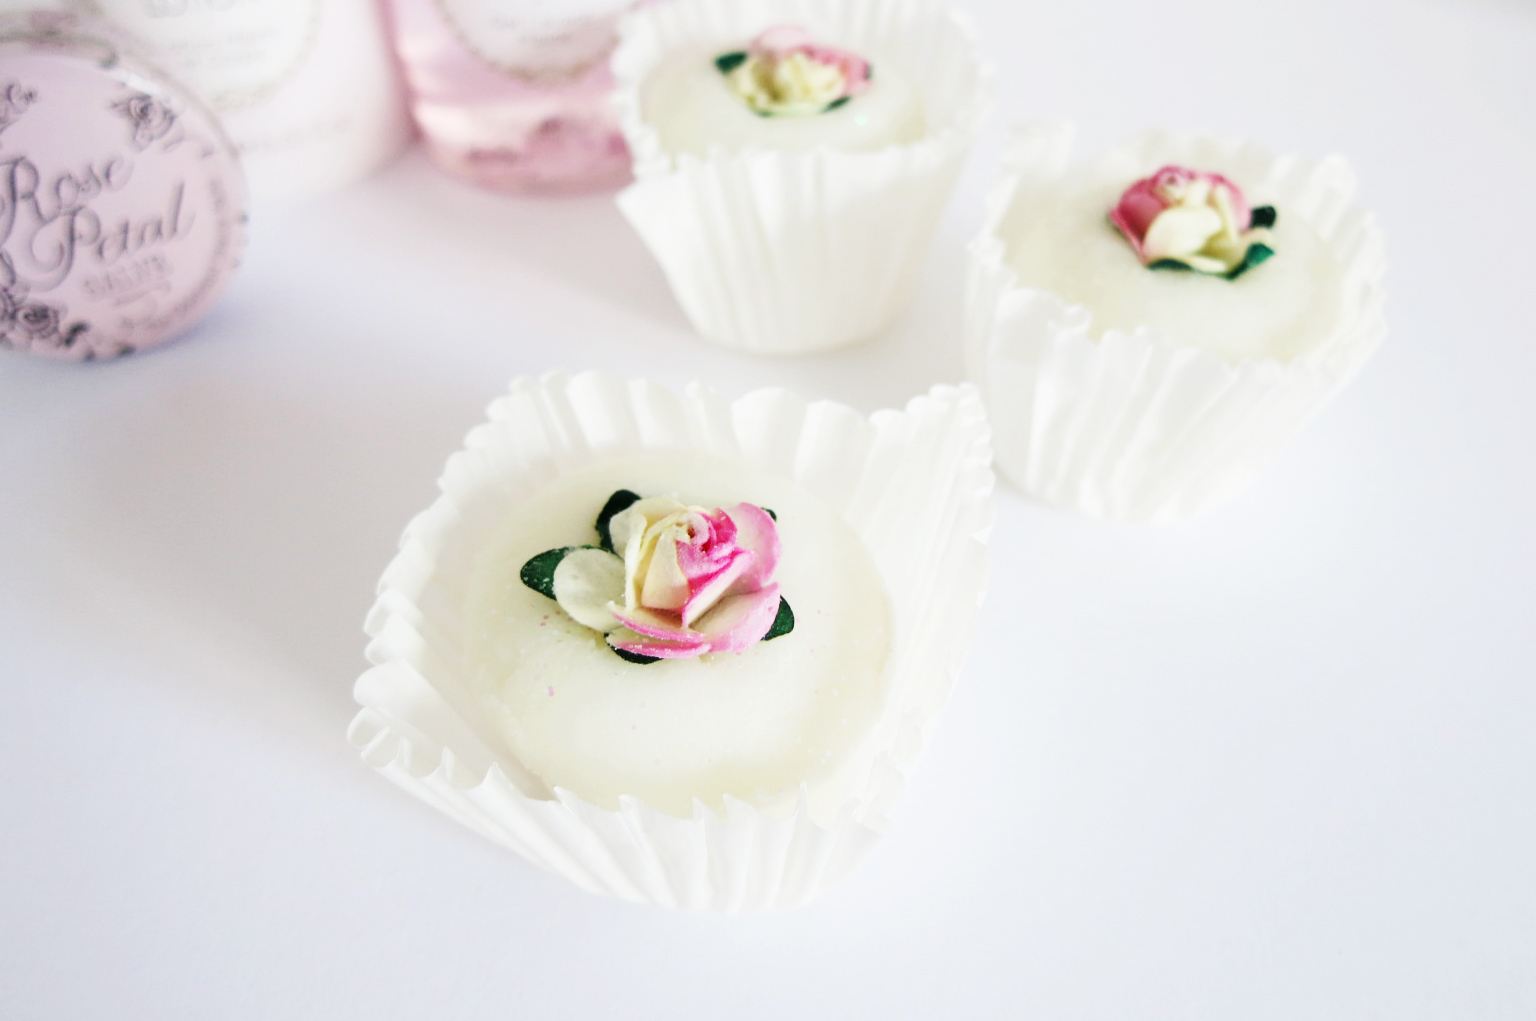 handmade bath melts